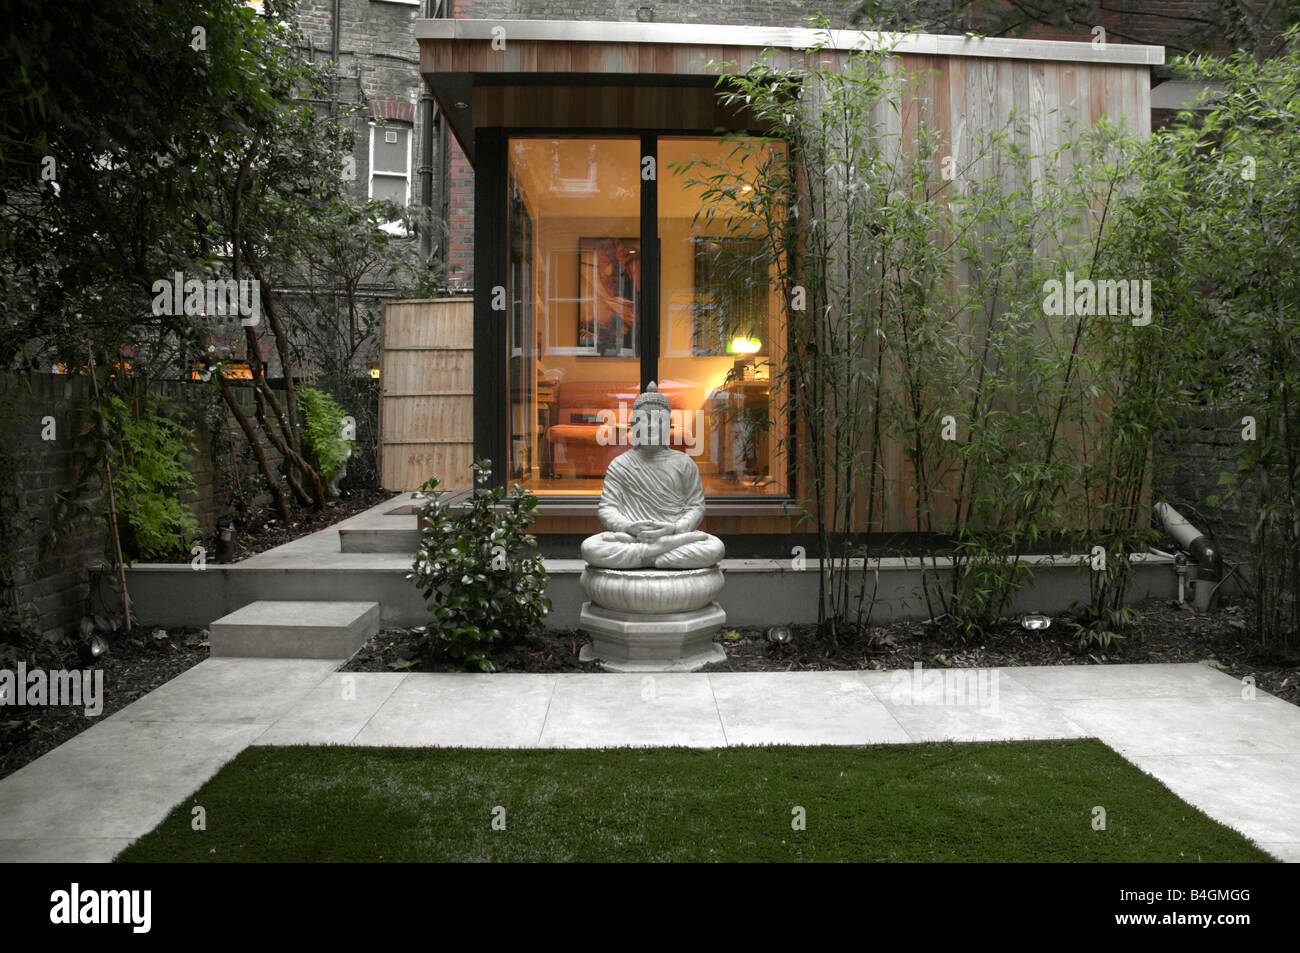 Buddha Statue In Modern Urban Garden Stock Photo Royalty Free